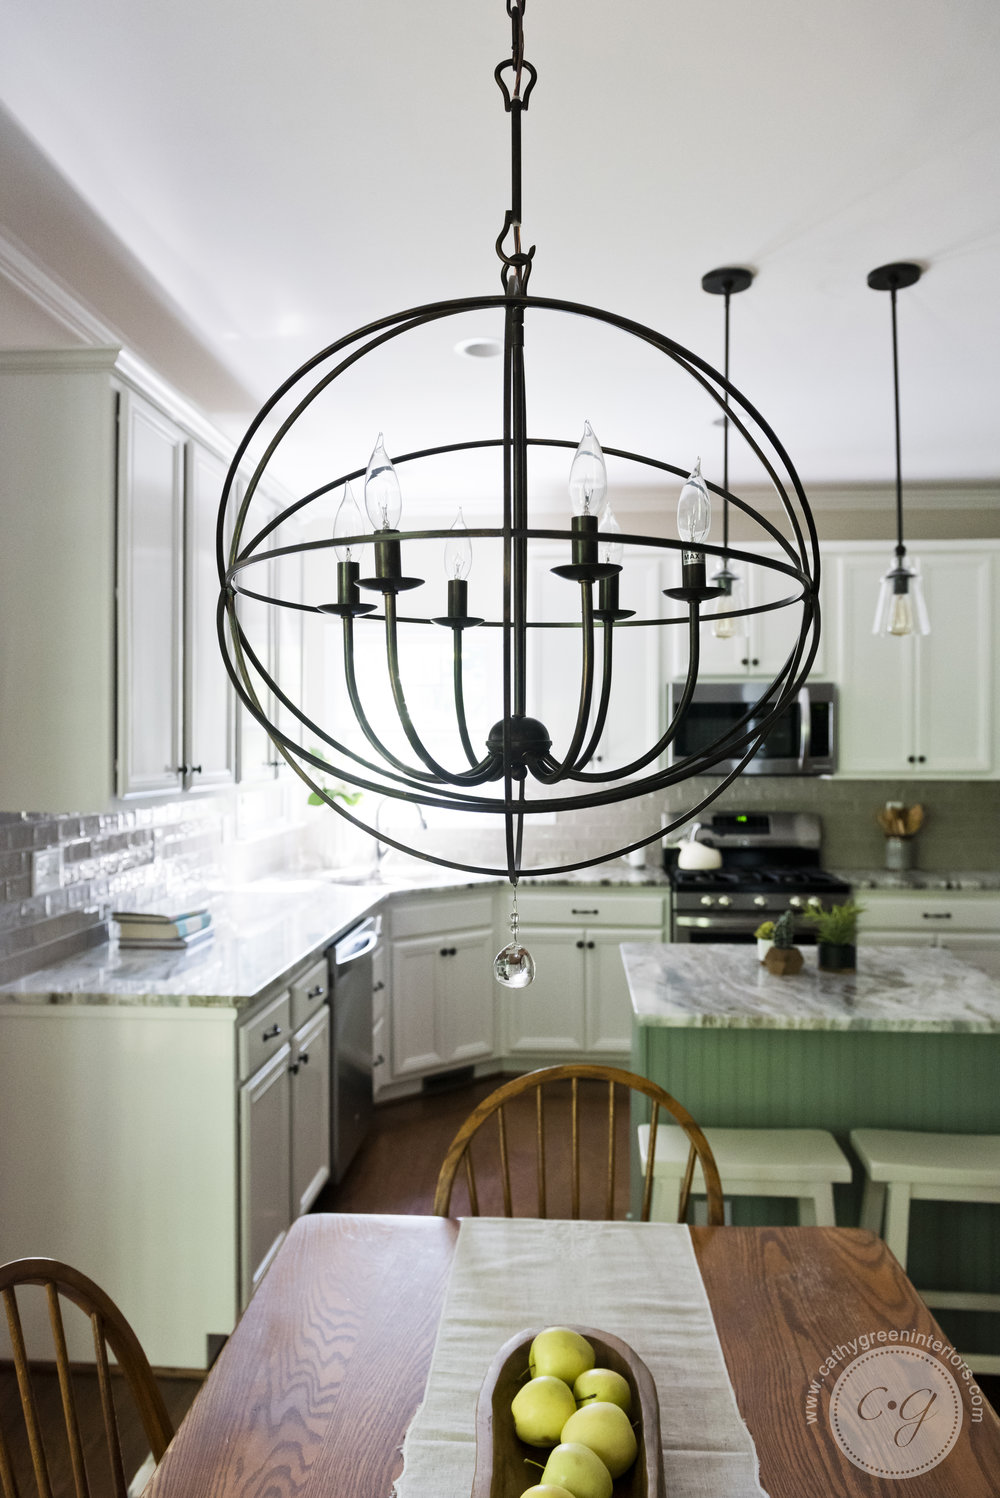 Orb light fixture, Transitional kitchen, Chesterfield, VA